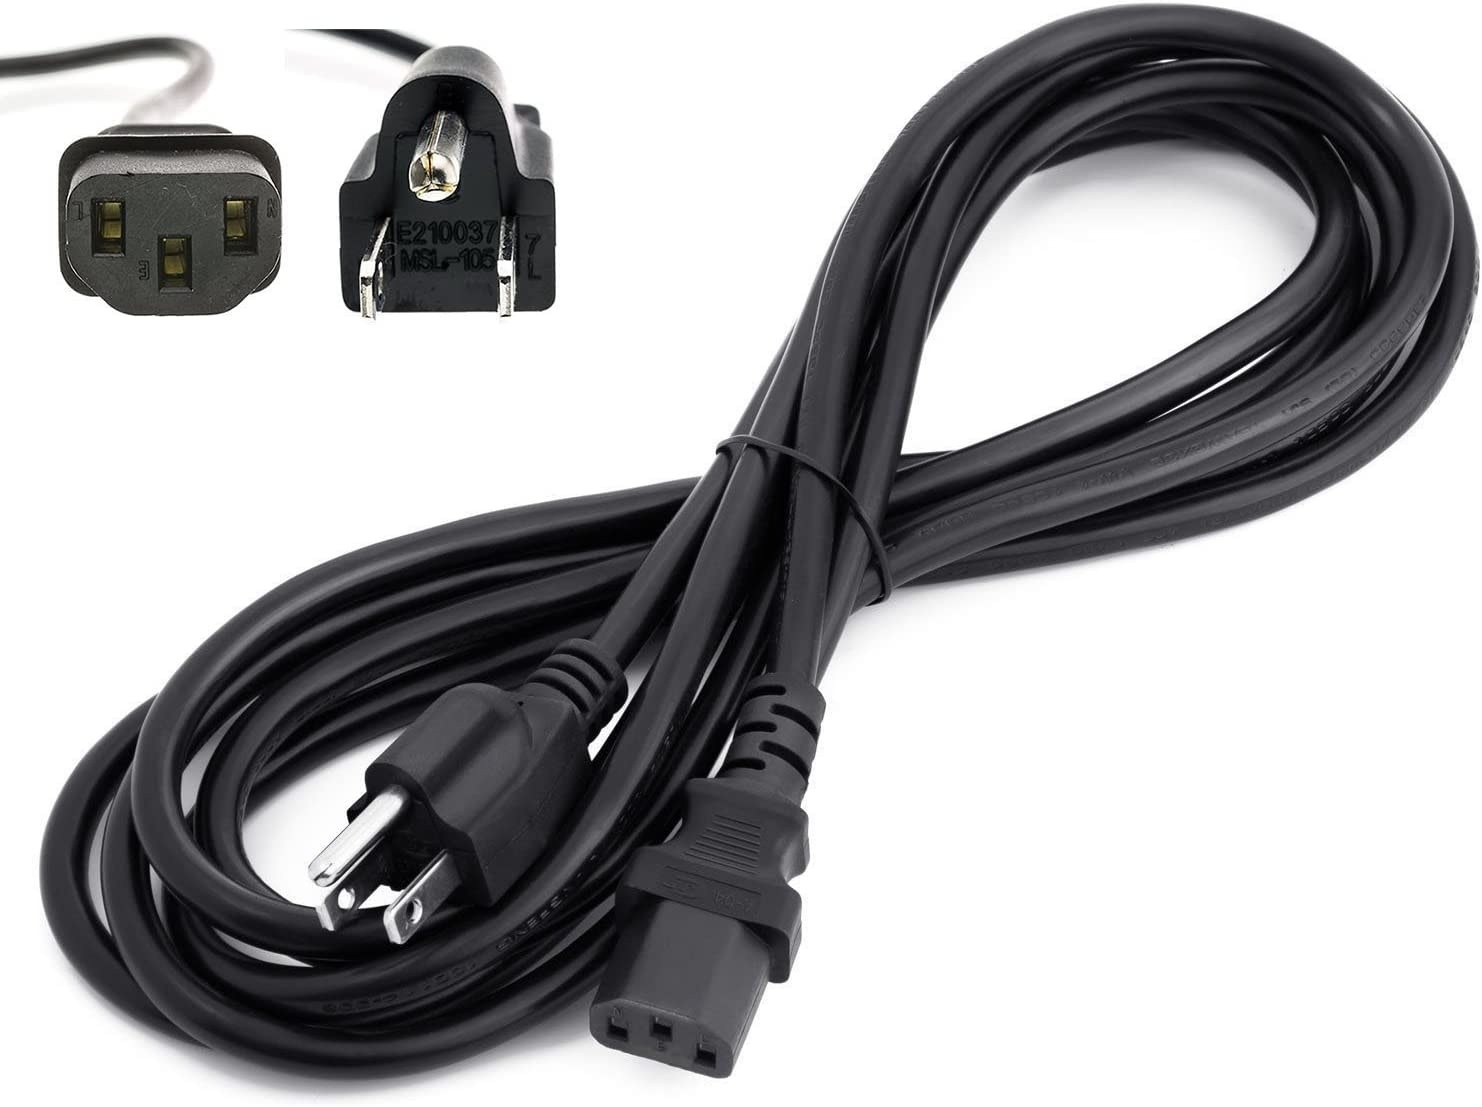 Amamax 15 Feet Extra Long AC Power Cord Cable for VIZIO TV with Life Time Warranty (UL Listed)